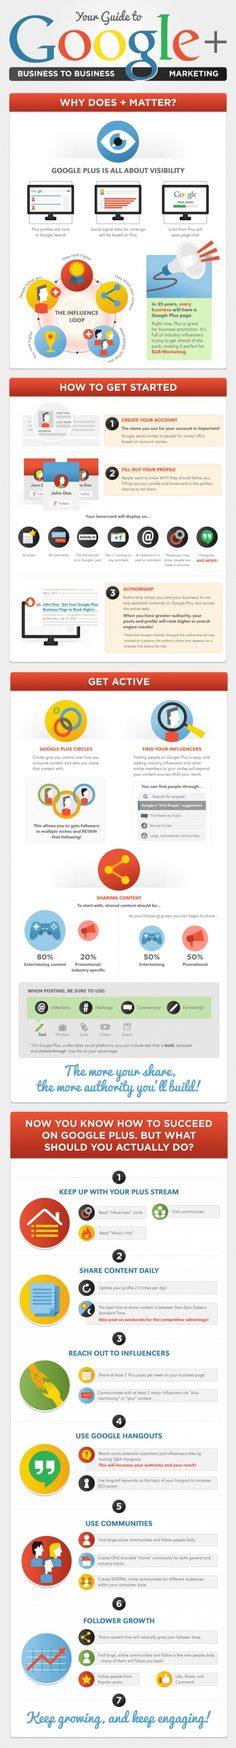 Discover How to Amplifying B2B Marketing Content with Google Plus in this #socialmedia #Infographic